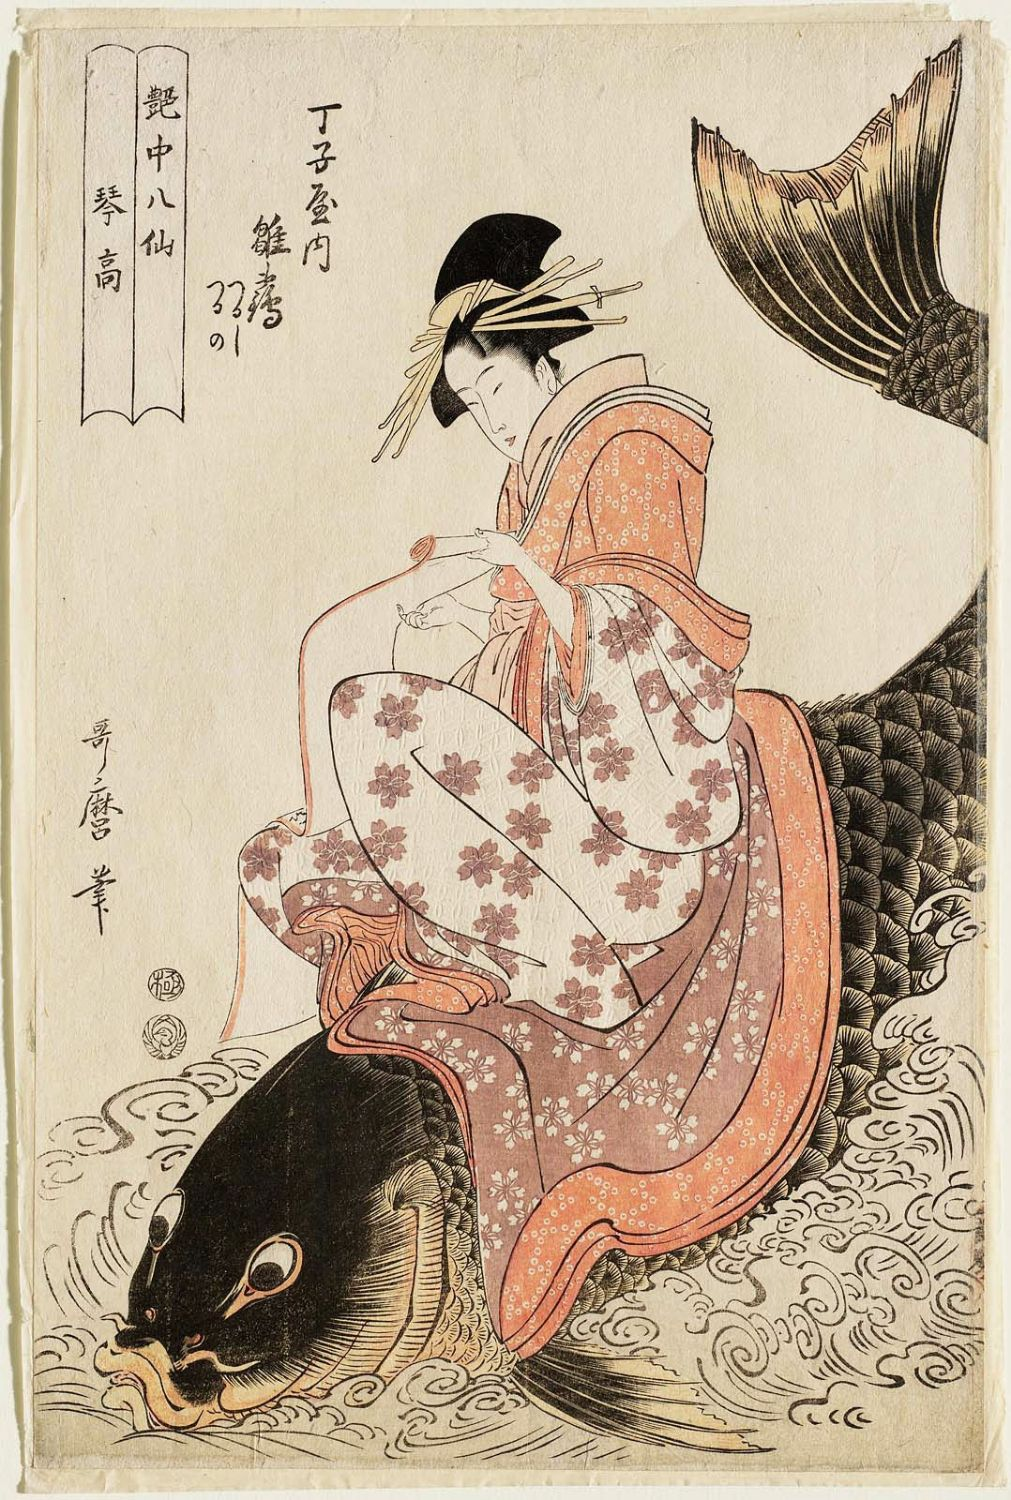 1000+ images about japanese print /art on Pinterest.